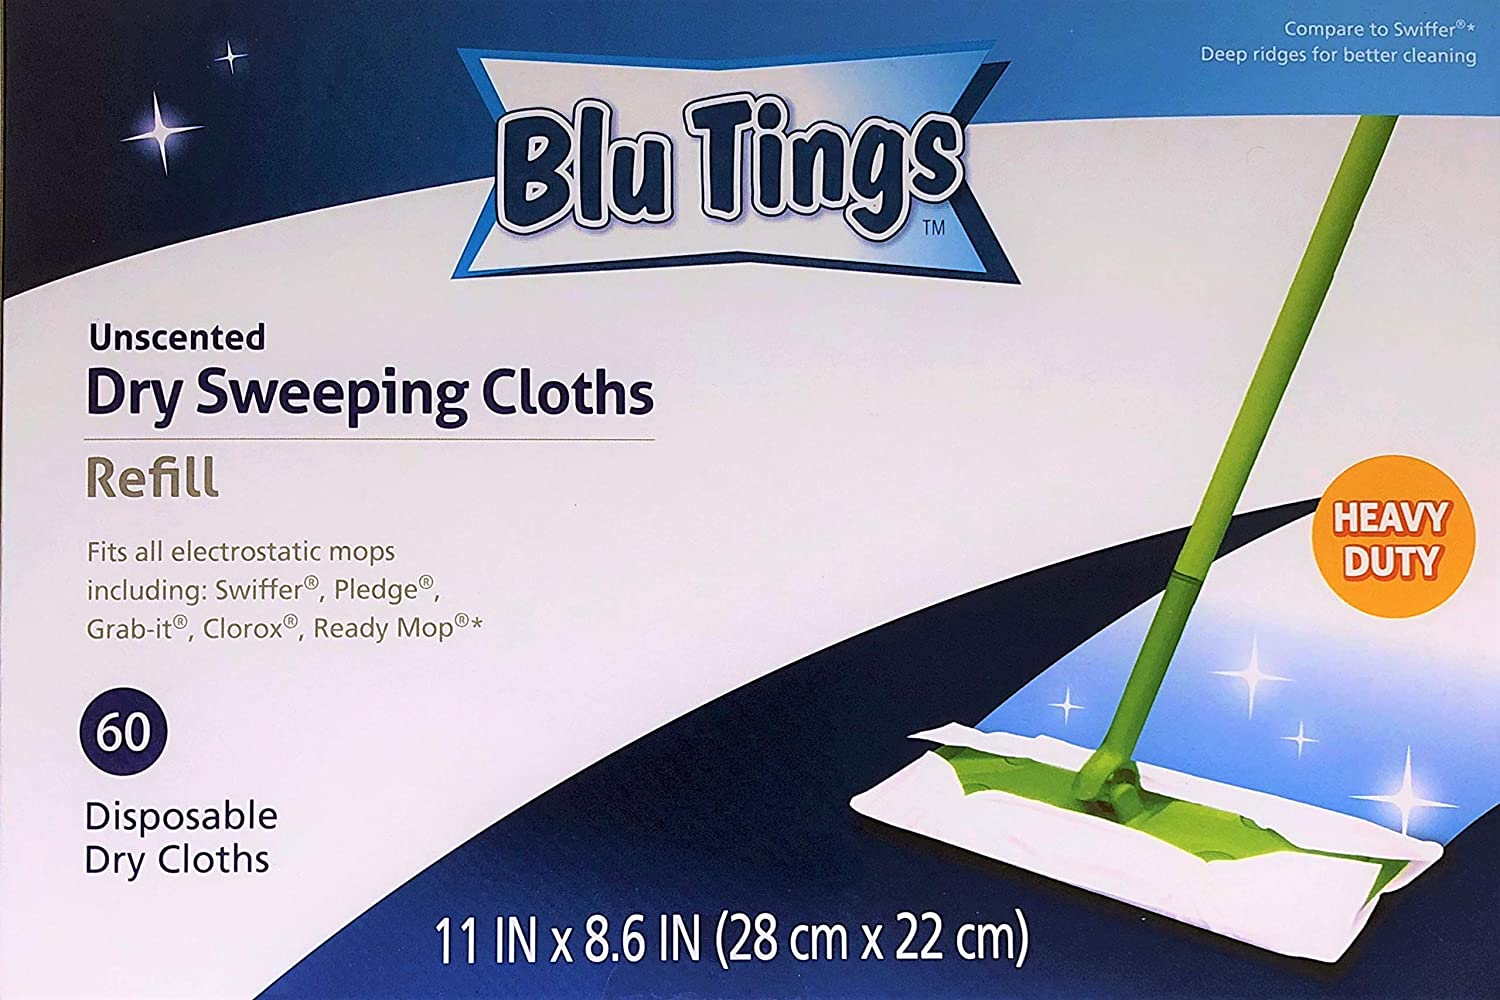 Contranco CJ LLC Generic Dry Sweeping Cloths Refill, fits Swiffer and Most Brands' mops, Heavy Duty, unscented, 60 Counts, by Blu Tings